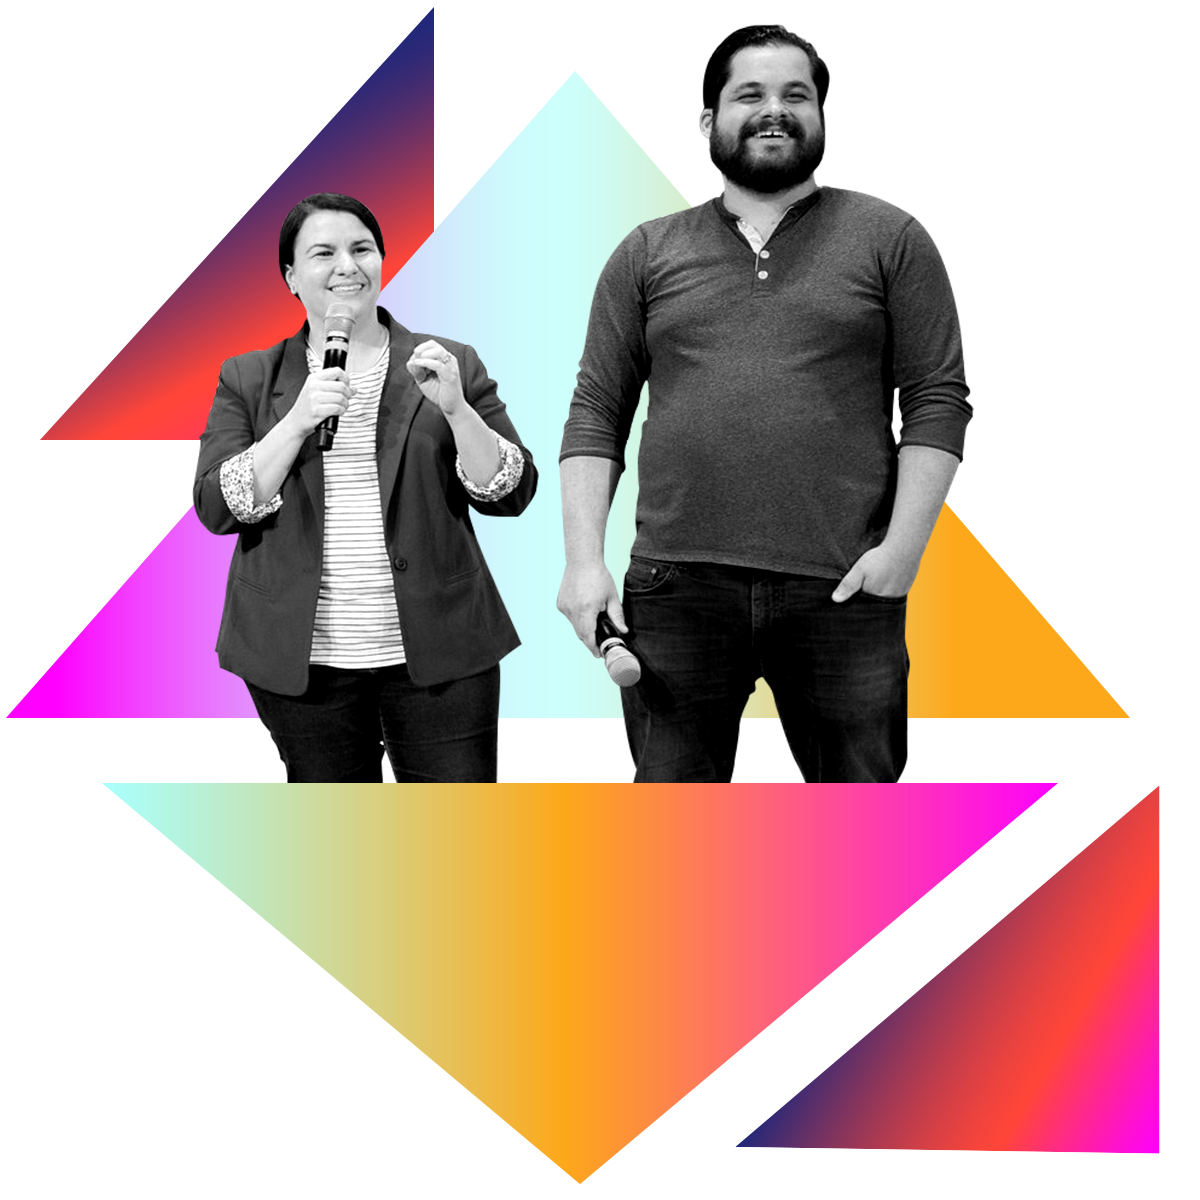 Photo illustration of Charlotte and Dave Willner in black and white surrounded by colored gradients